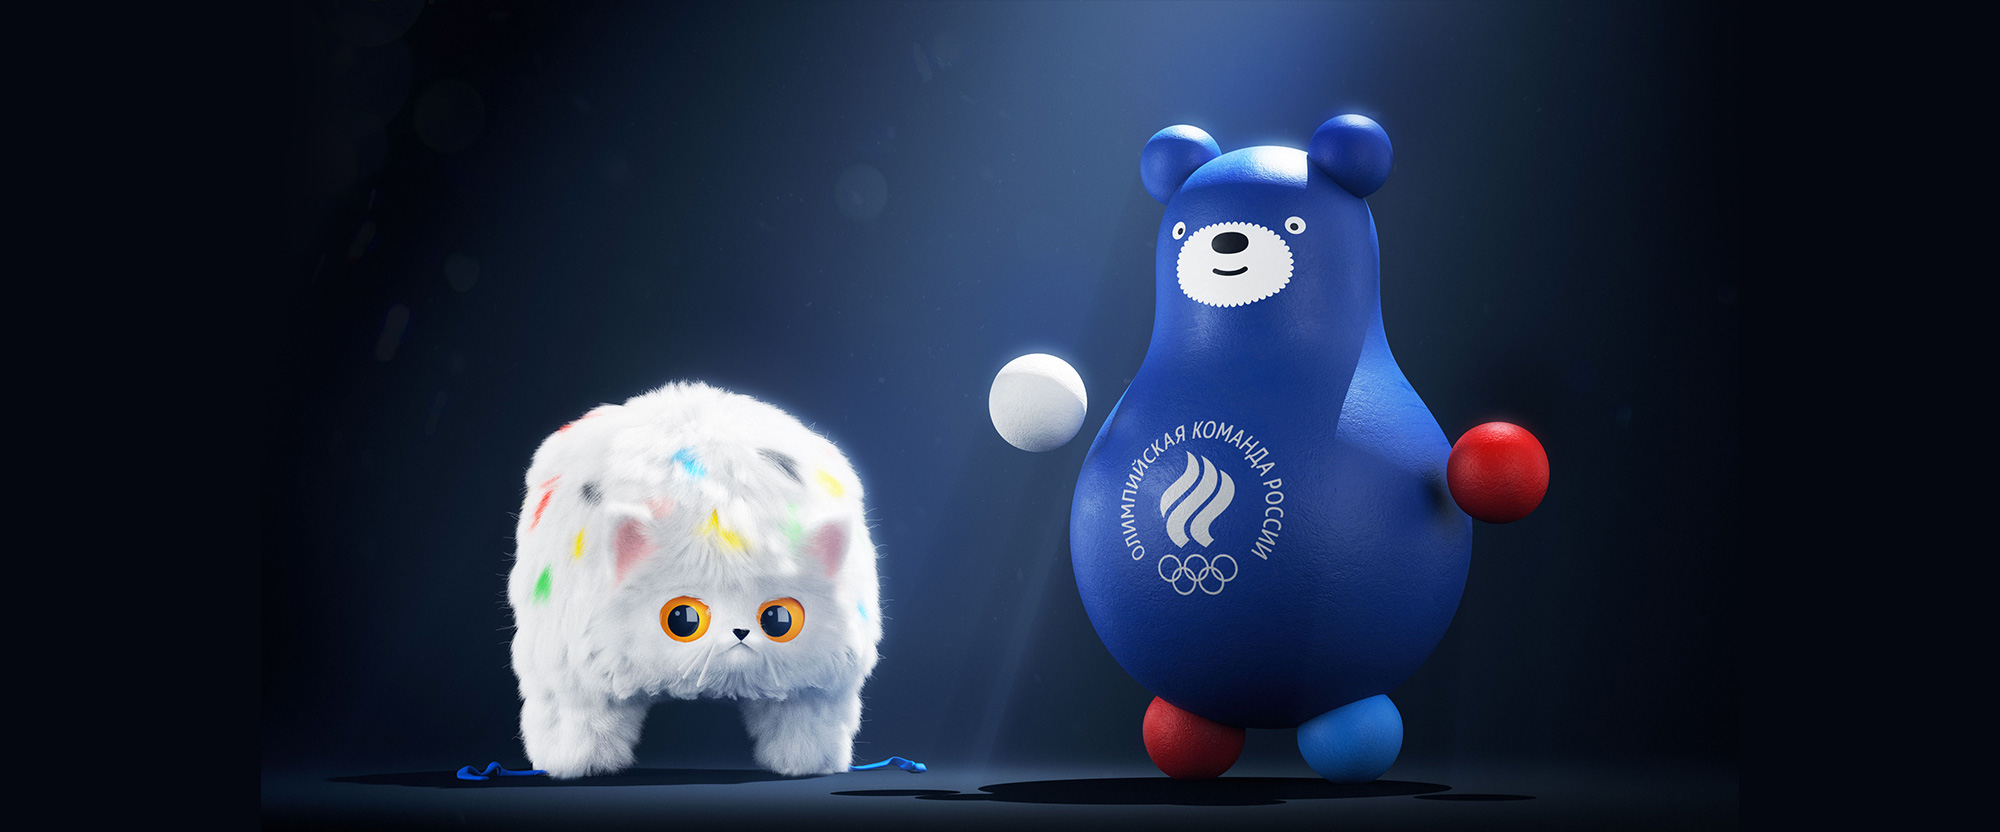 New Mascots for Team Russia by Art. Lebedev Studio